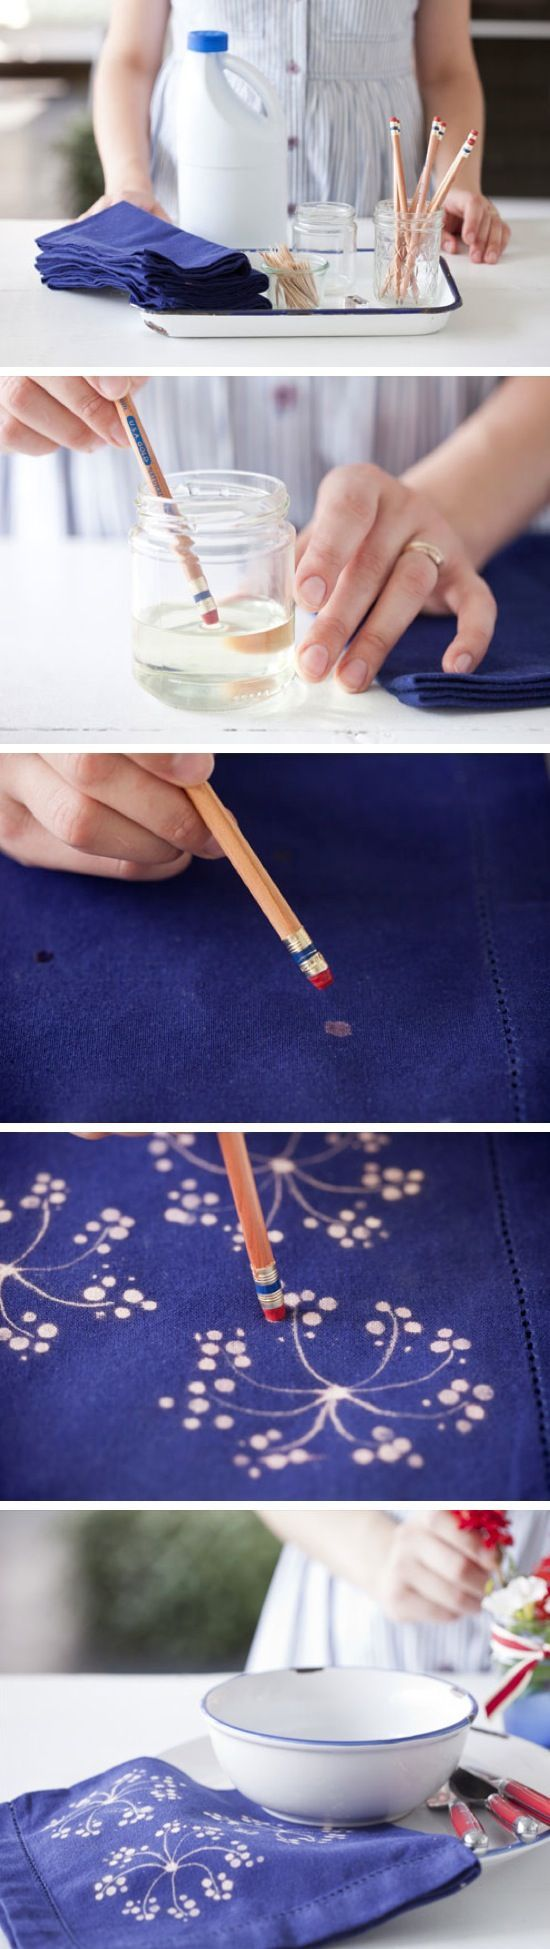 Simple DIY For a Rainy Day                                                                                                                                                                                 More